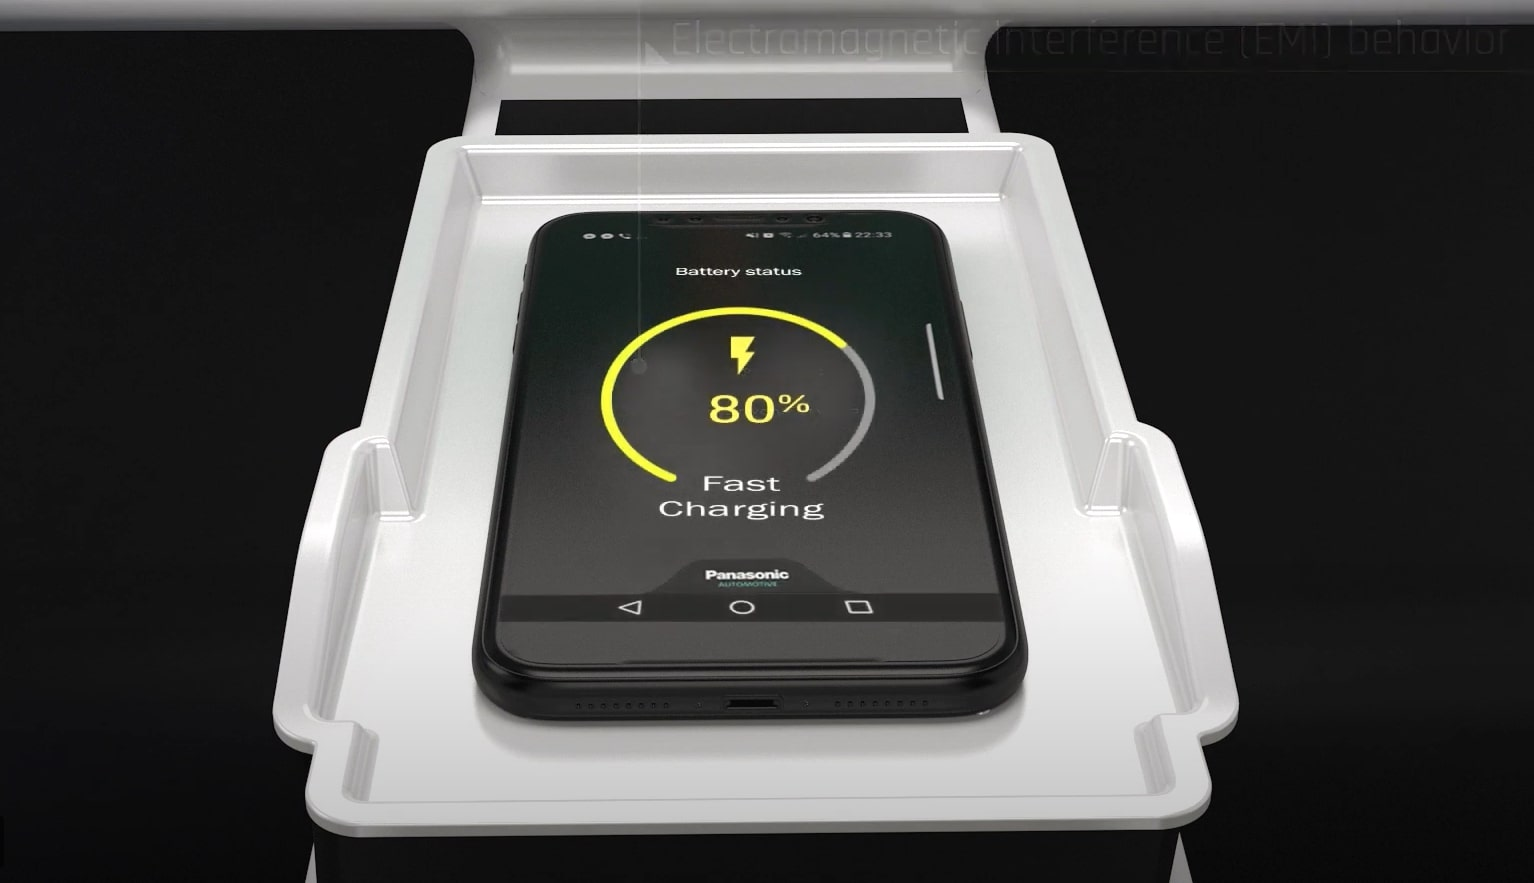 Panasonic unveils charger that moves to find better internet connection